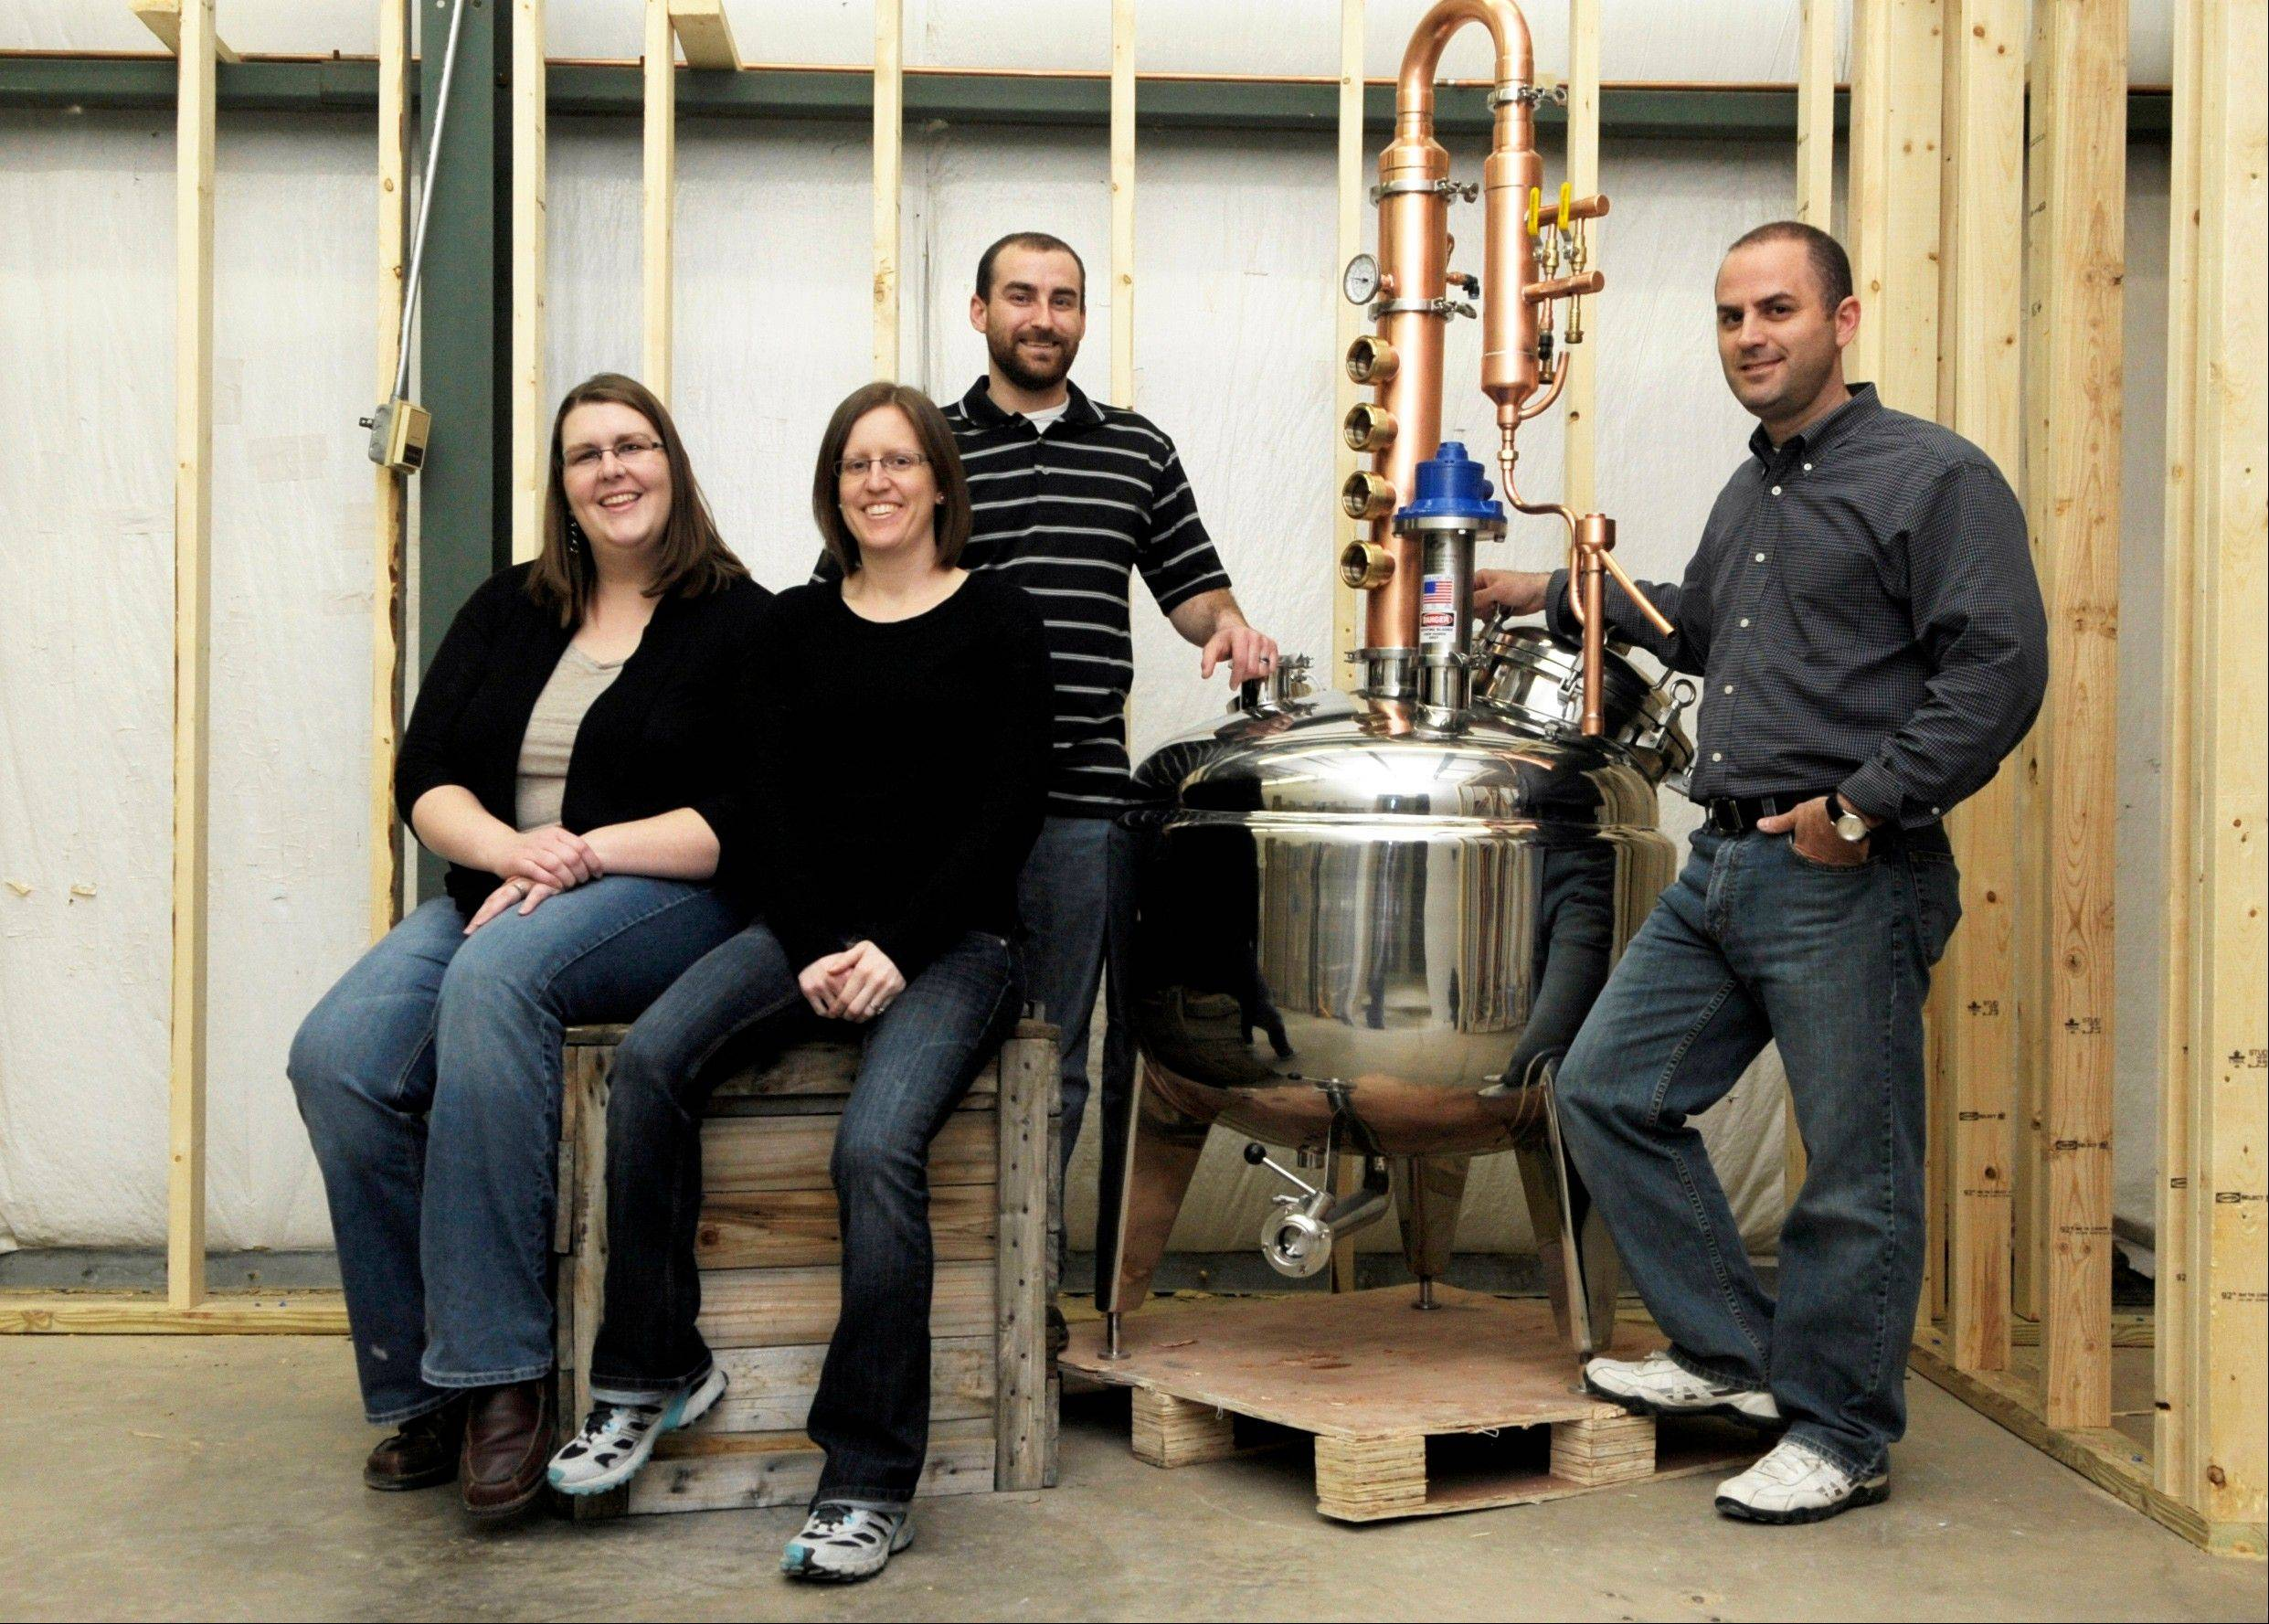 From left, sister-in-laws Kassi and Kristin Williams with brothers Jesse and Jon Williams in front of their 60-gallon whiskey still in the building still under construction that will house J.K. Williams Distilling in East Peoria.